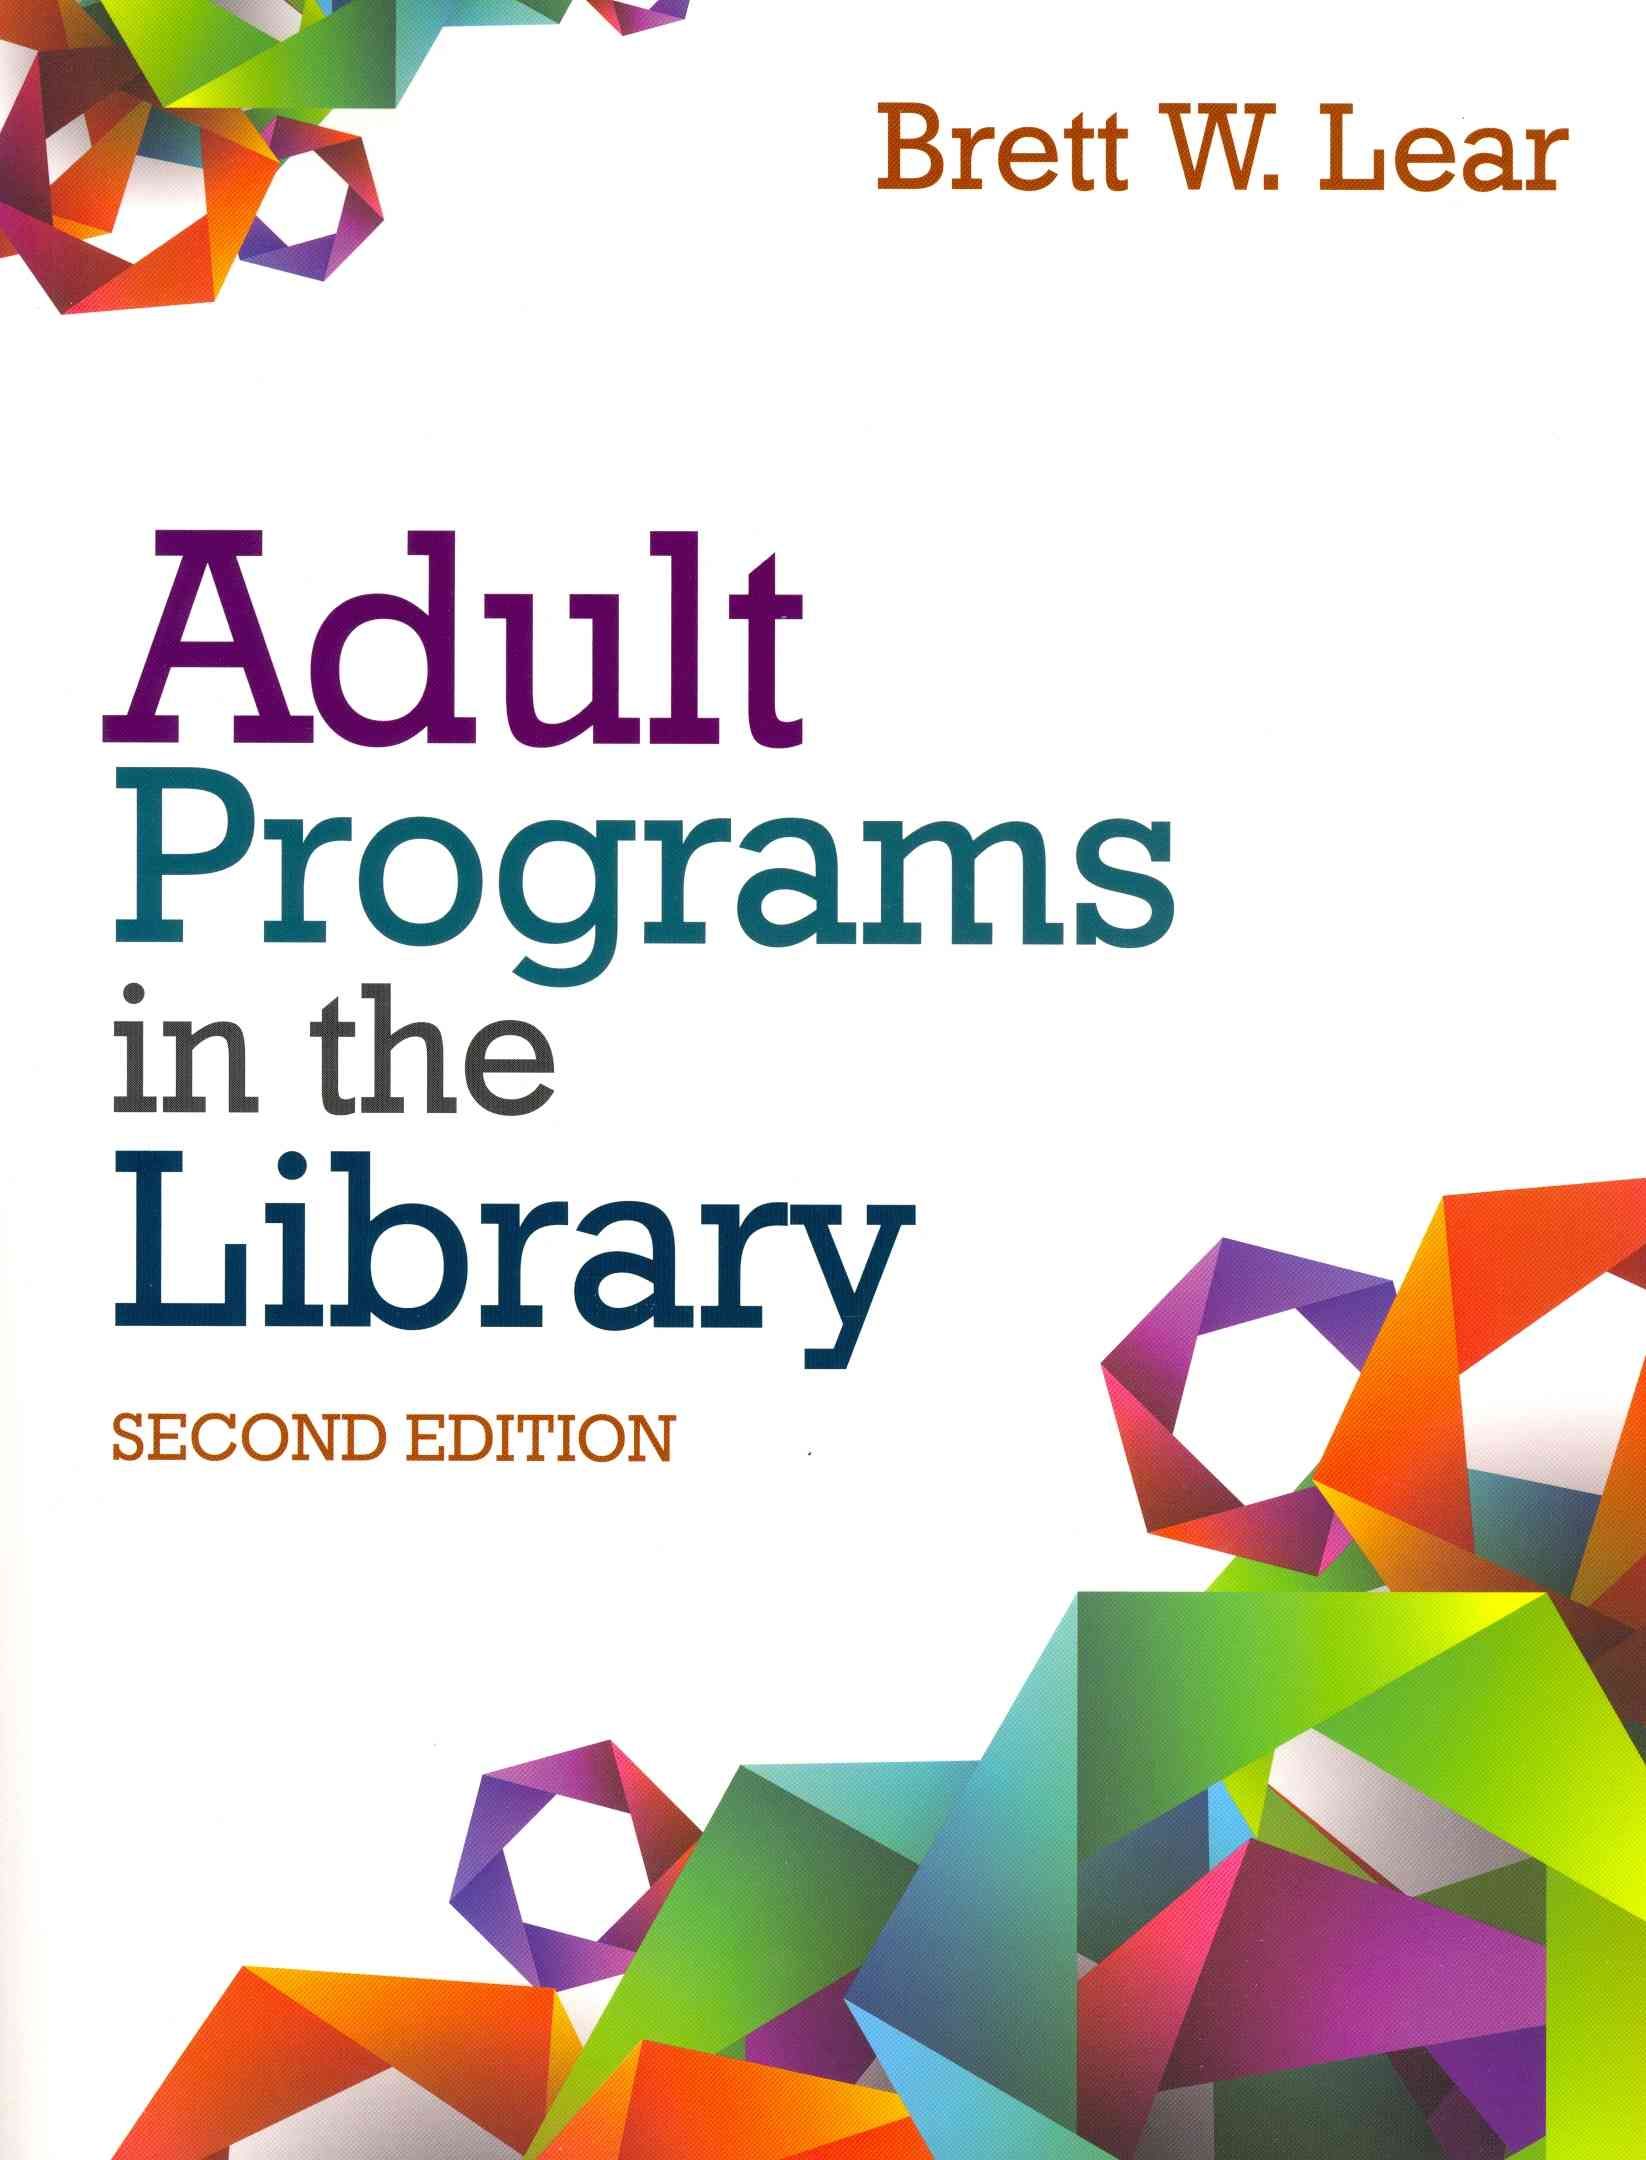 Adult Programs in the Library By Lear, Brett W.